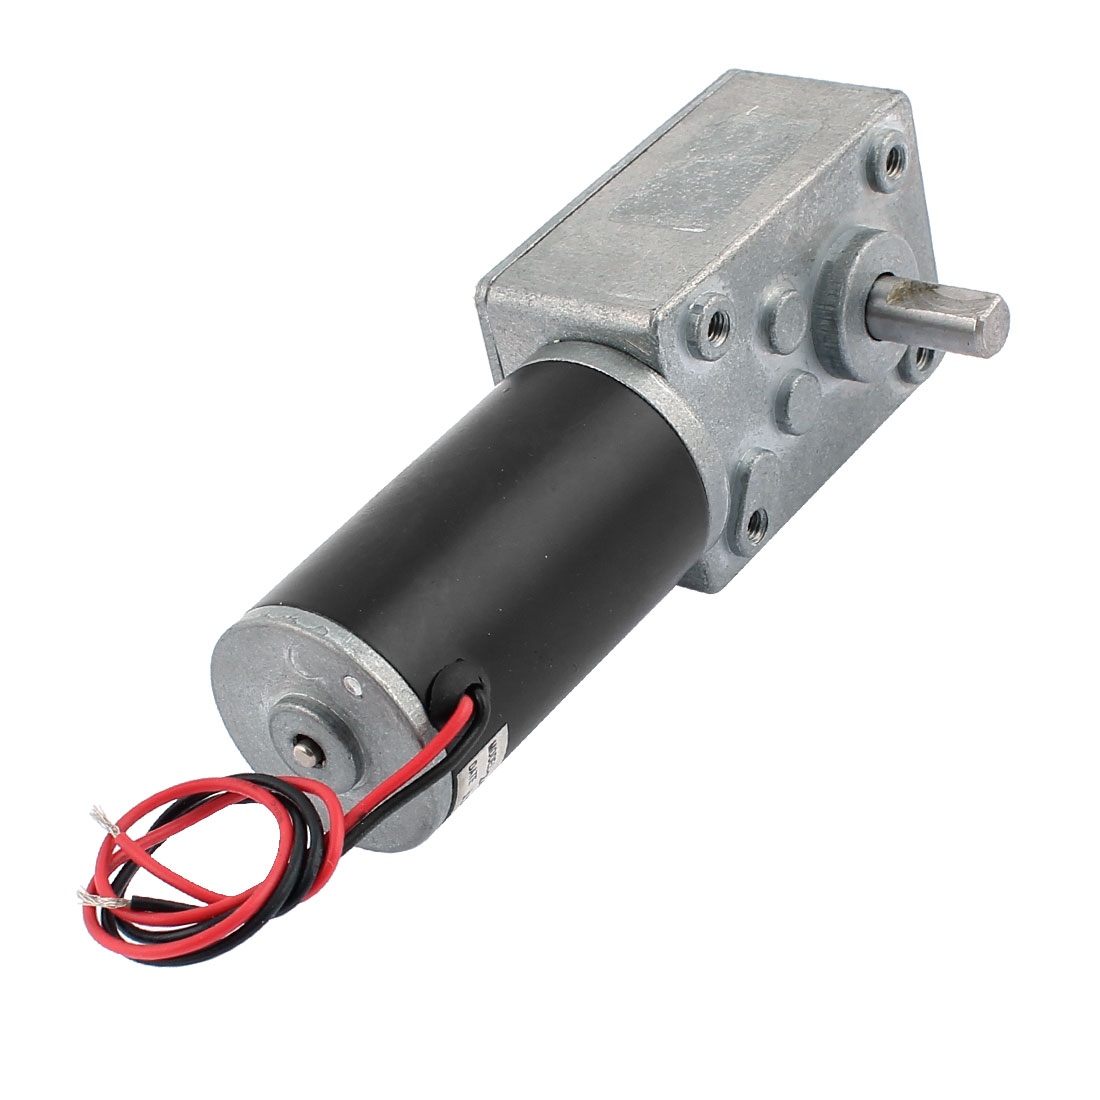 DC 24V 30RPM 8mmx15mm Dual D-Shape Shaft Electric Power Turbo Worm Geared Motor